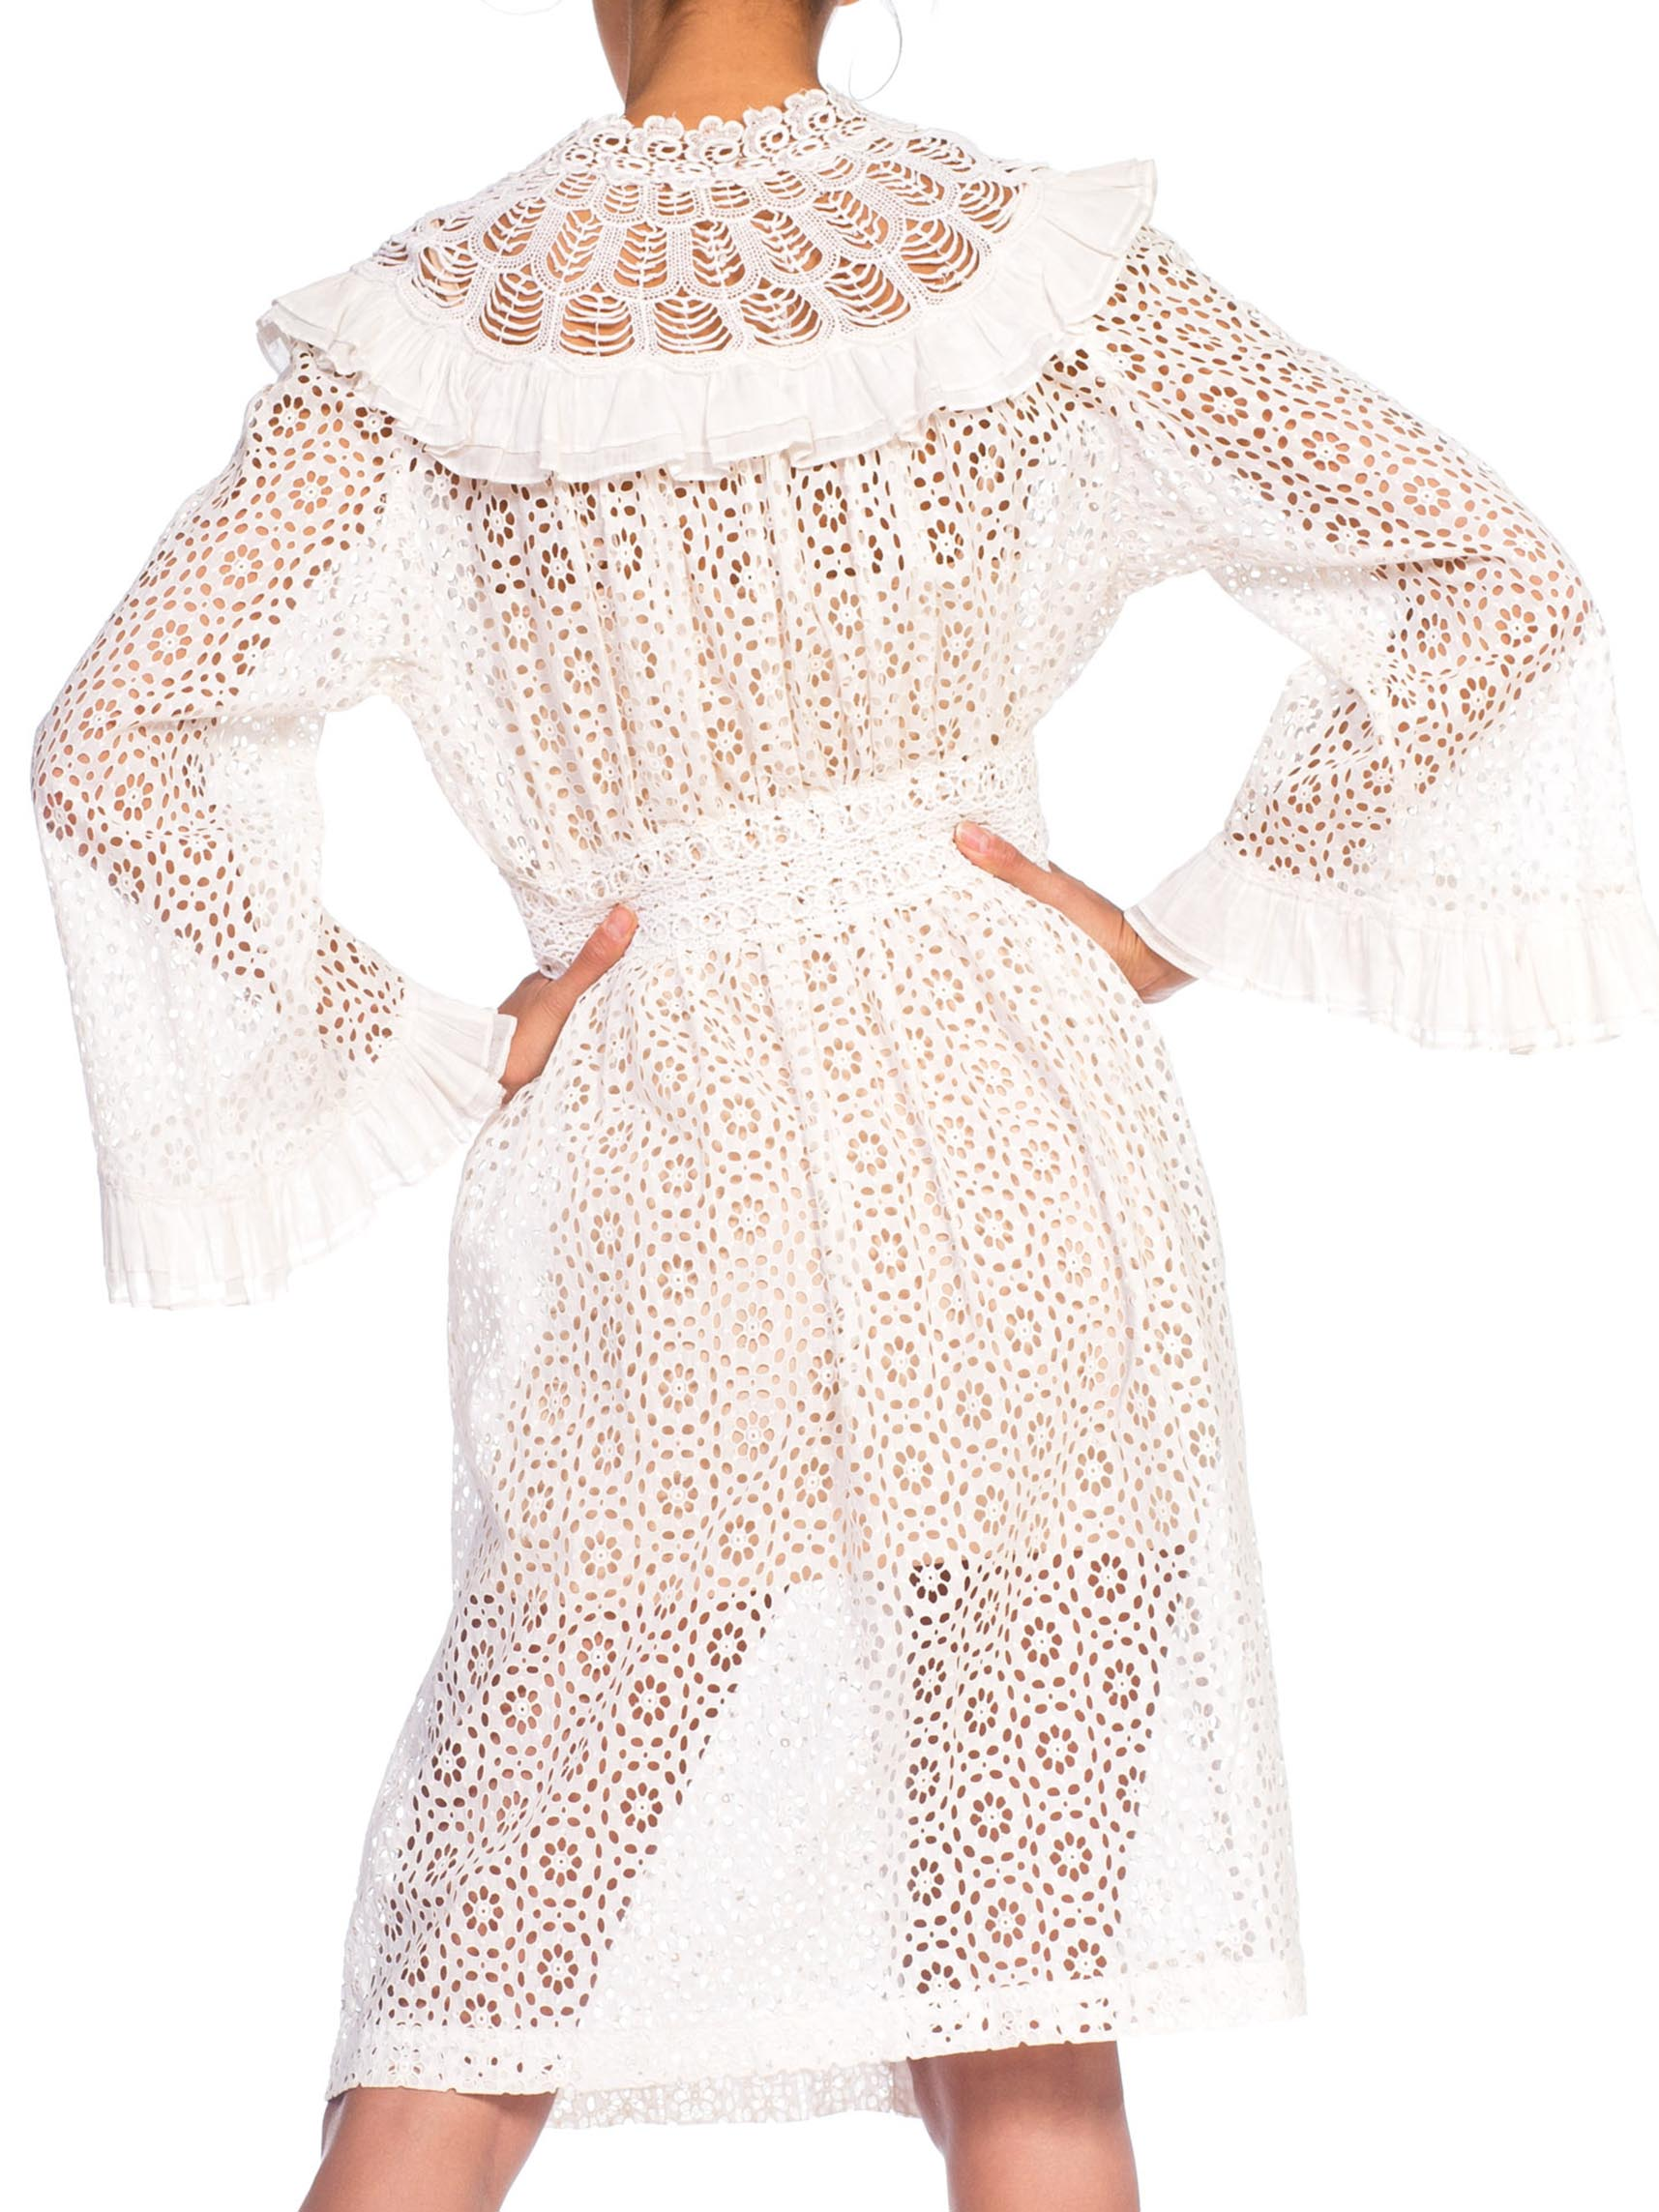 Morphew Collection White Organic Cotton Belle Sleeve Dress With Ruffle Detail Made From Victorian Eyelet Lace Duster